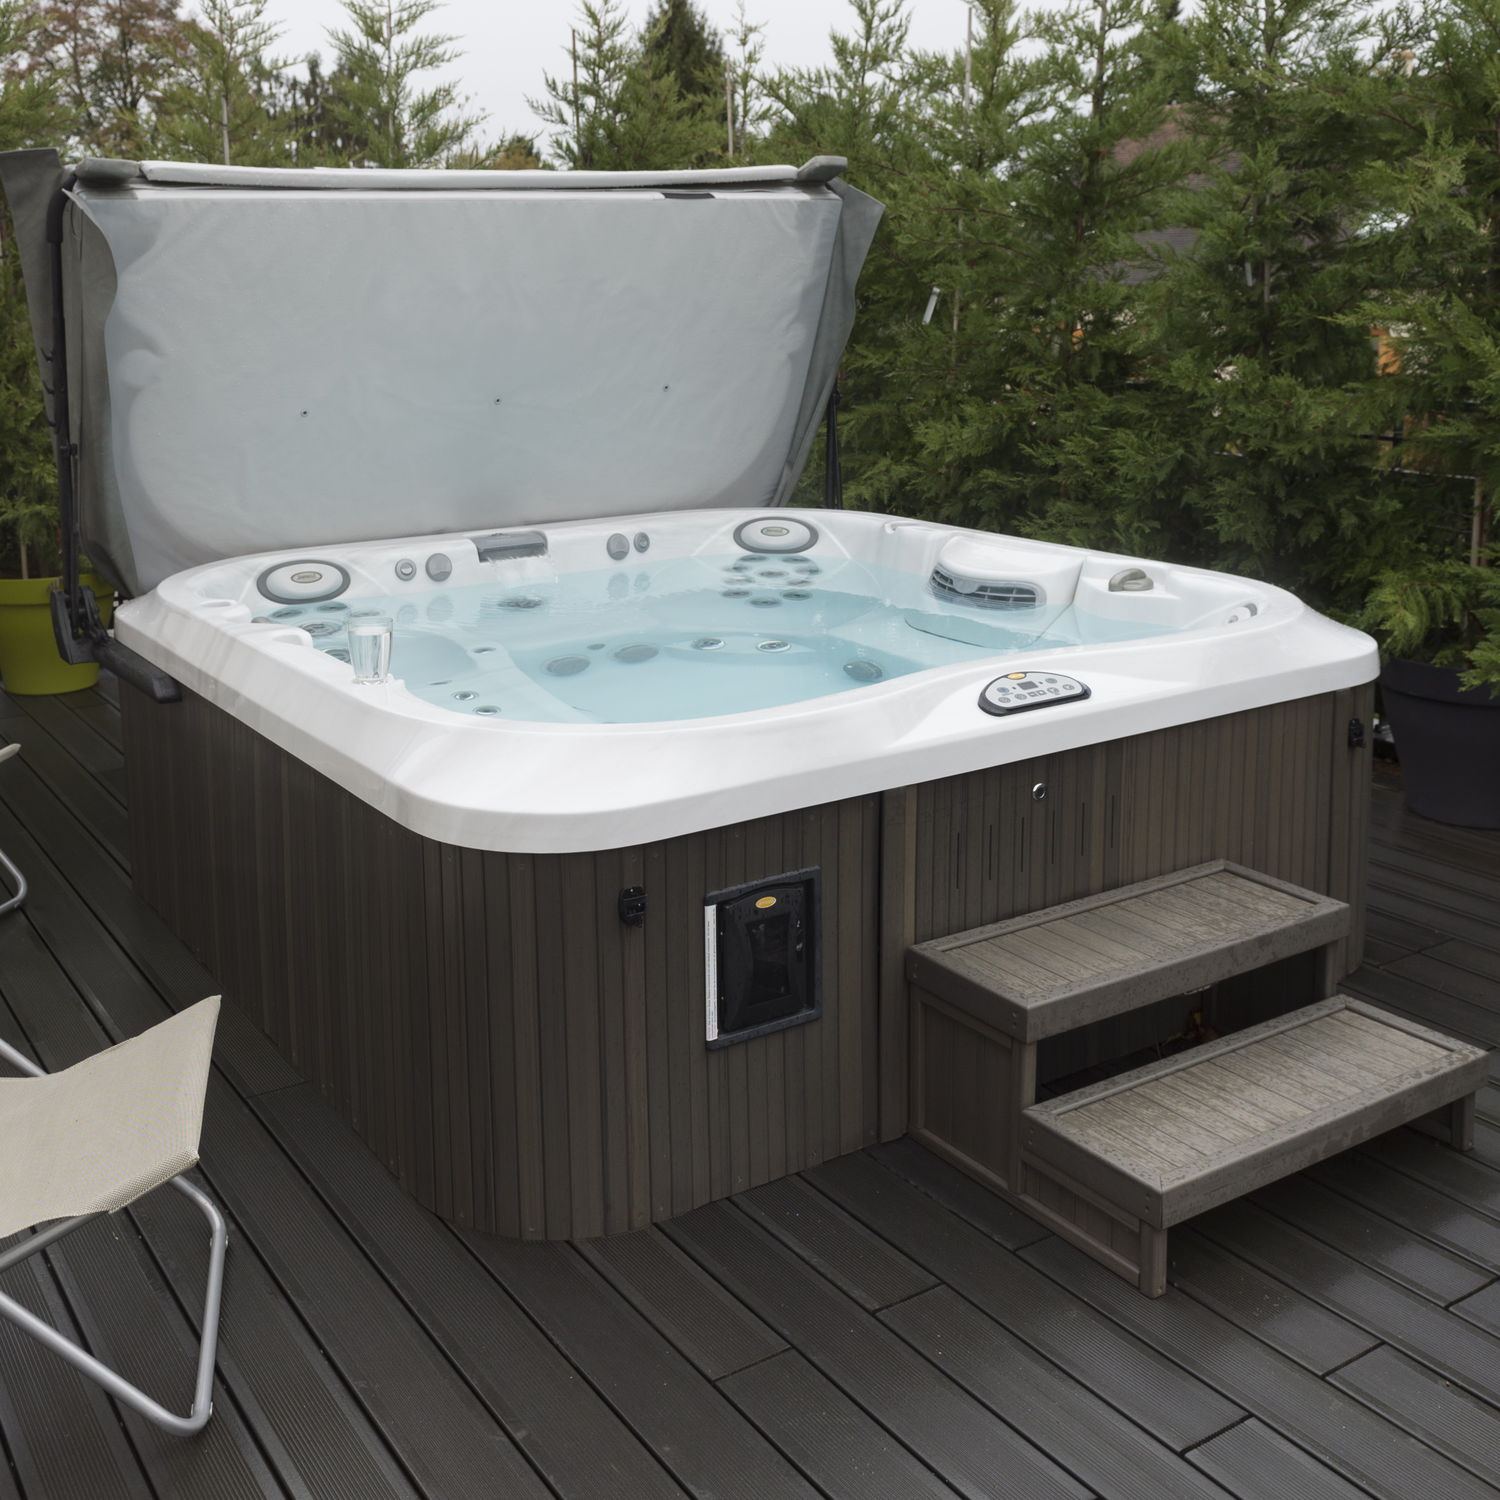 spring hot detail tub gleam person products gallery marble sterling limelight tubs espresso